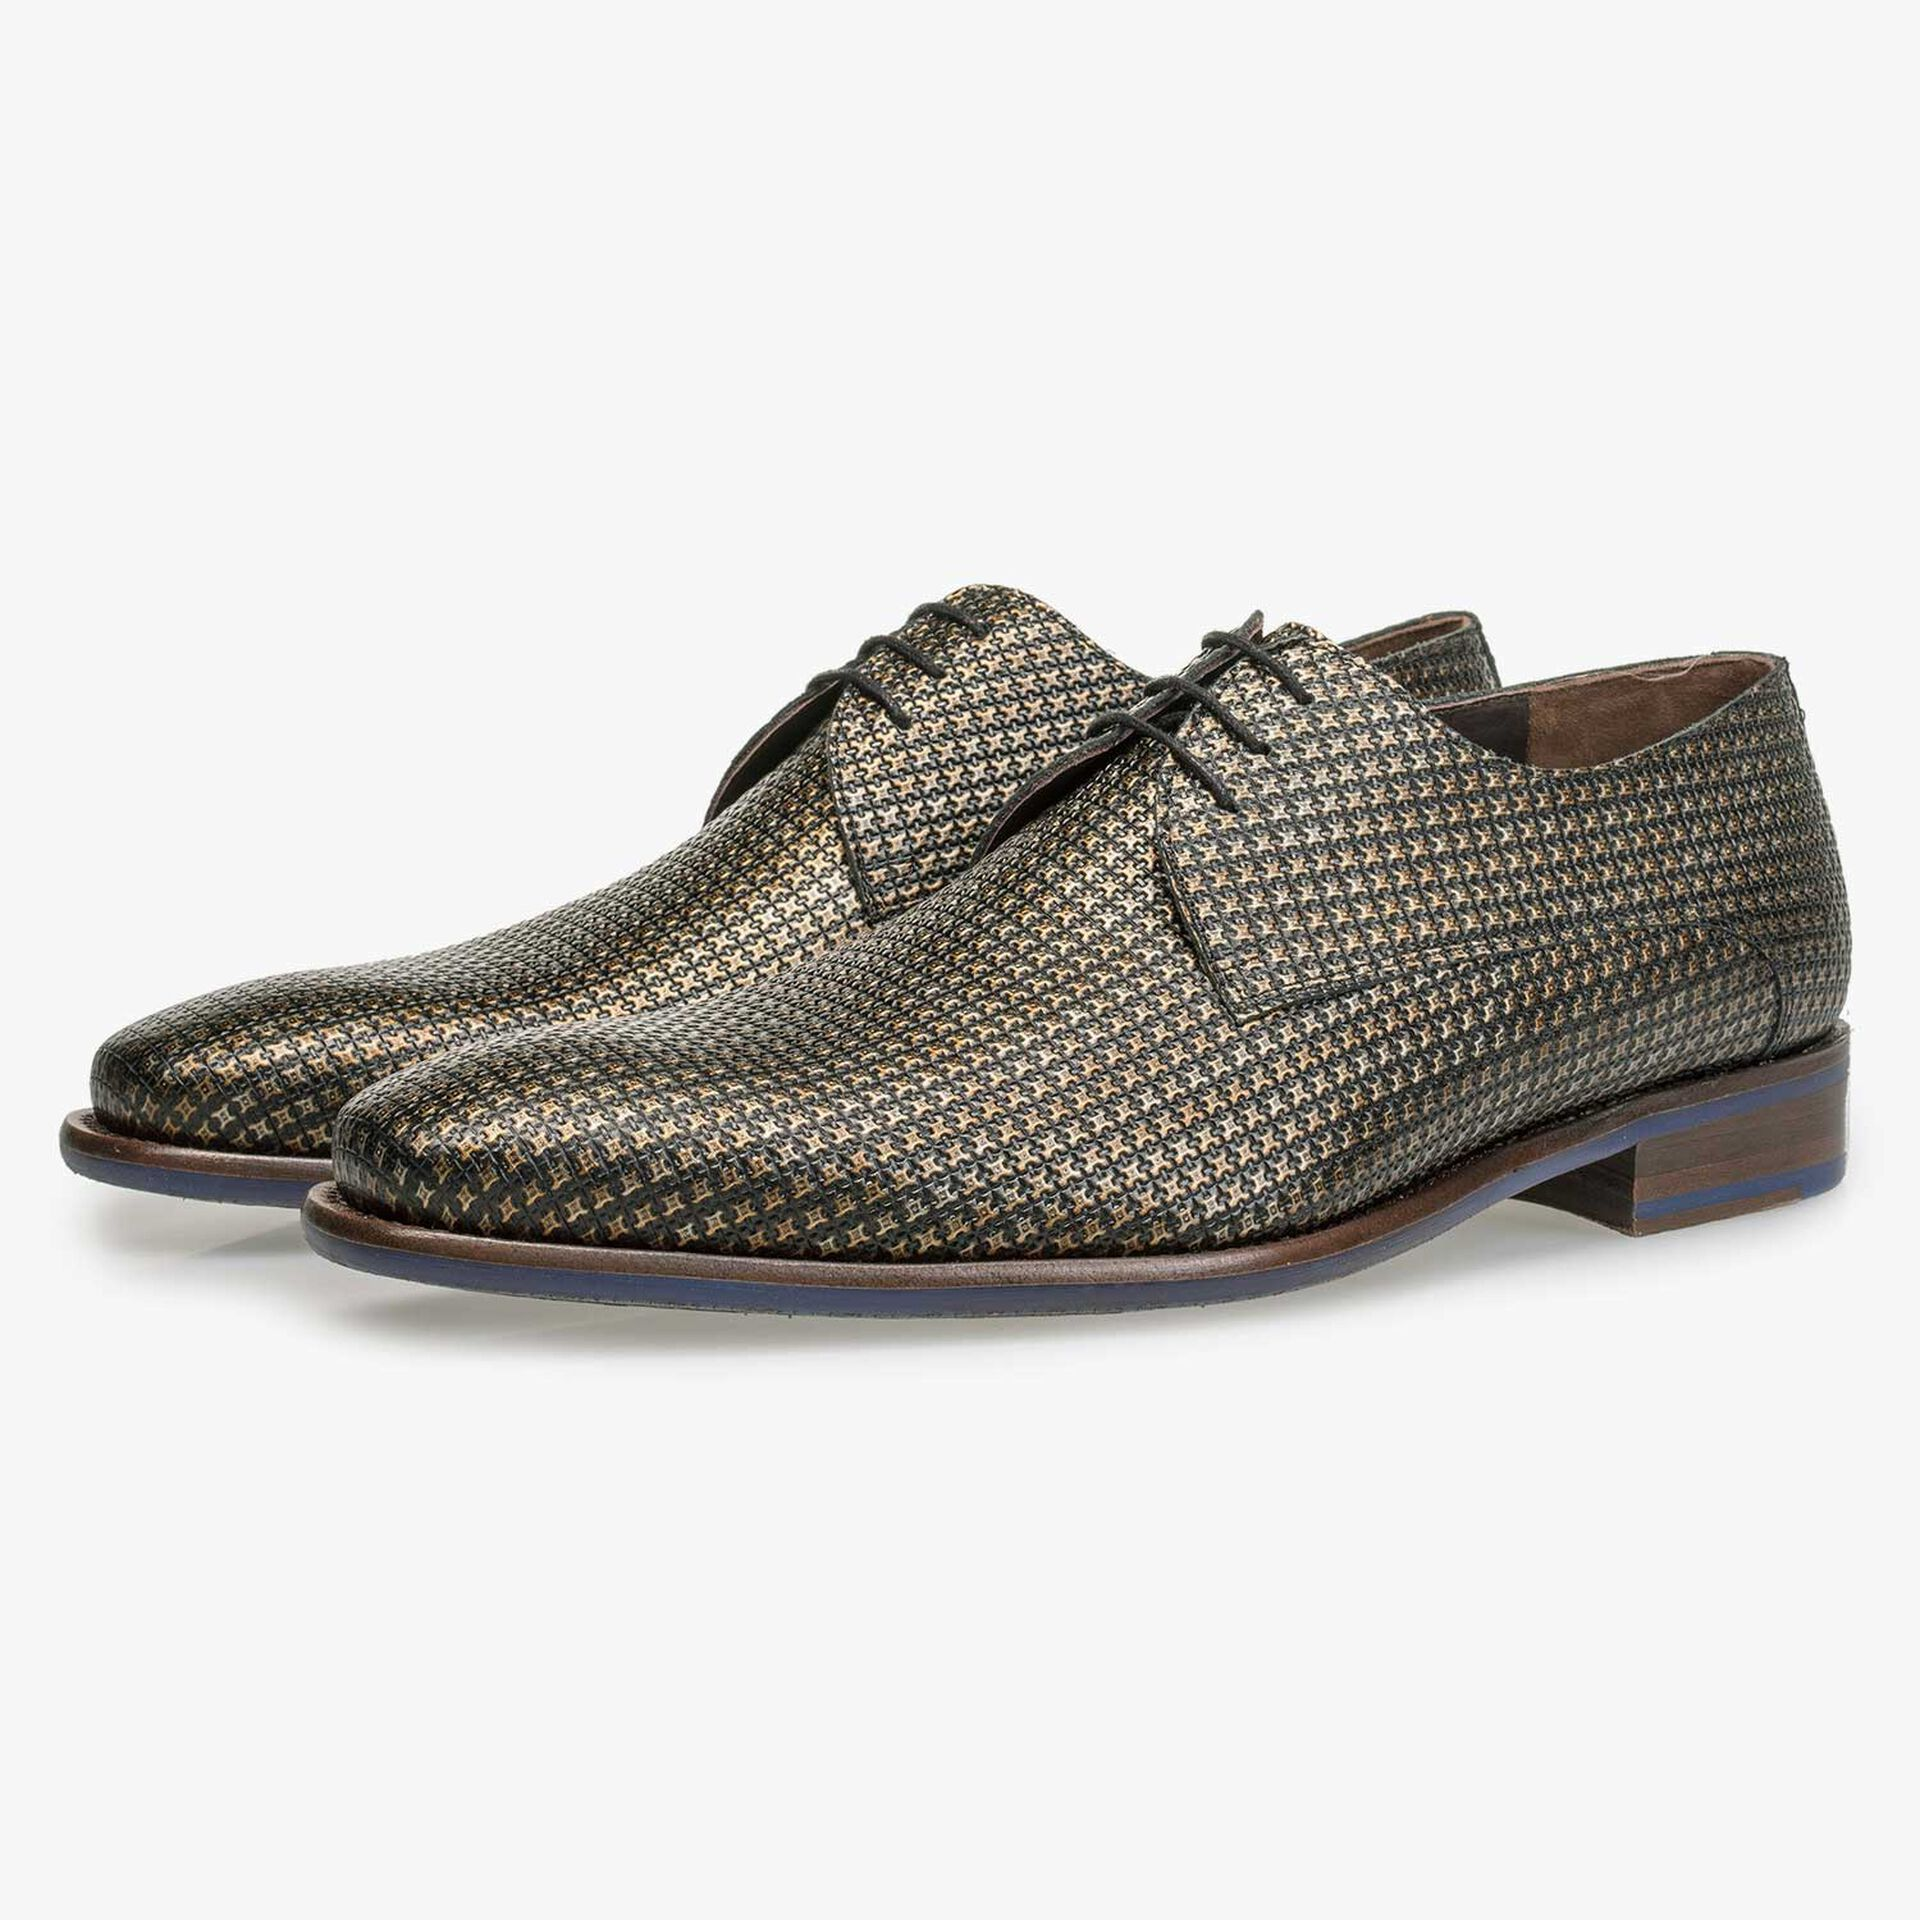 Bronze-coloured calf's leather lace shoe with structural pattern